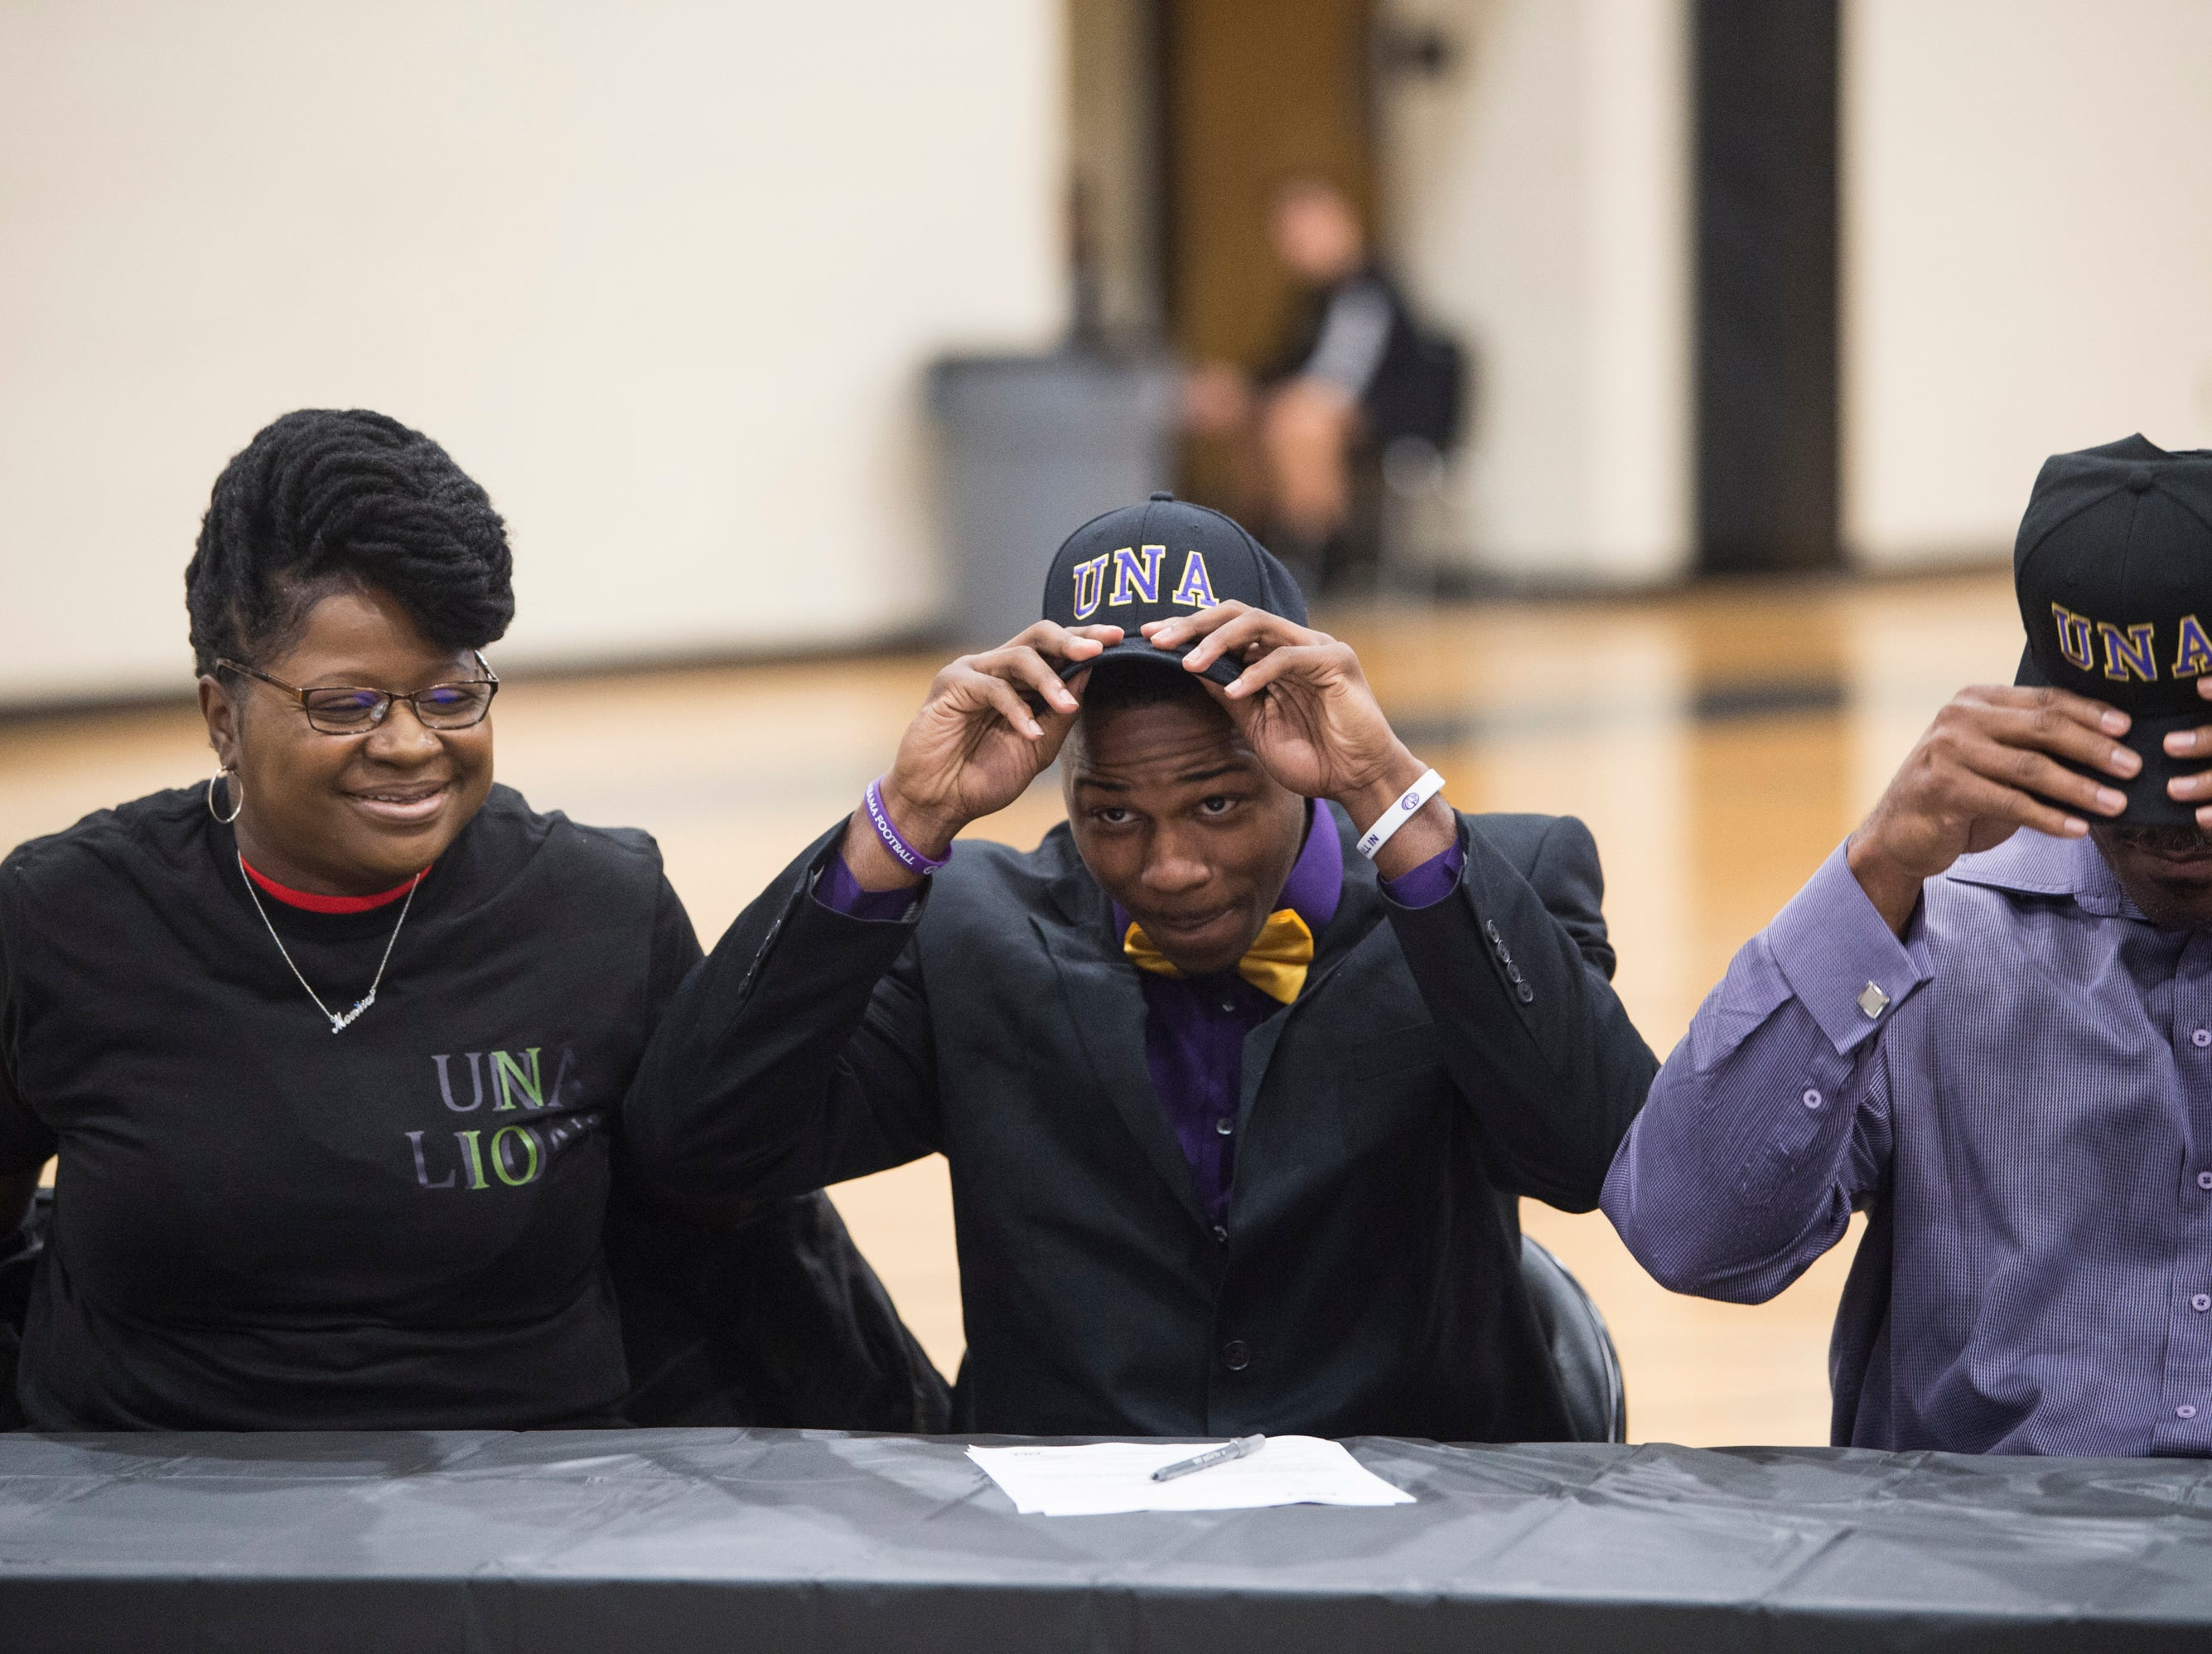 EJ Rogers signs his letter of intent to Northern Alabama University during signing day at Wetumpka High School in Wetumpka, Ala., on Wednesday, Feb. 6, 2019.